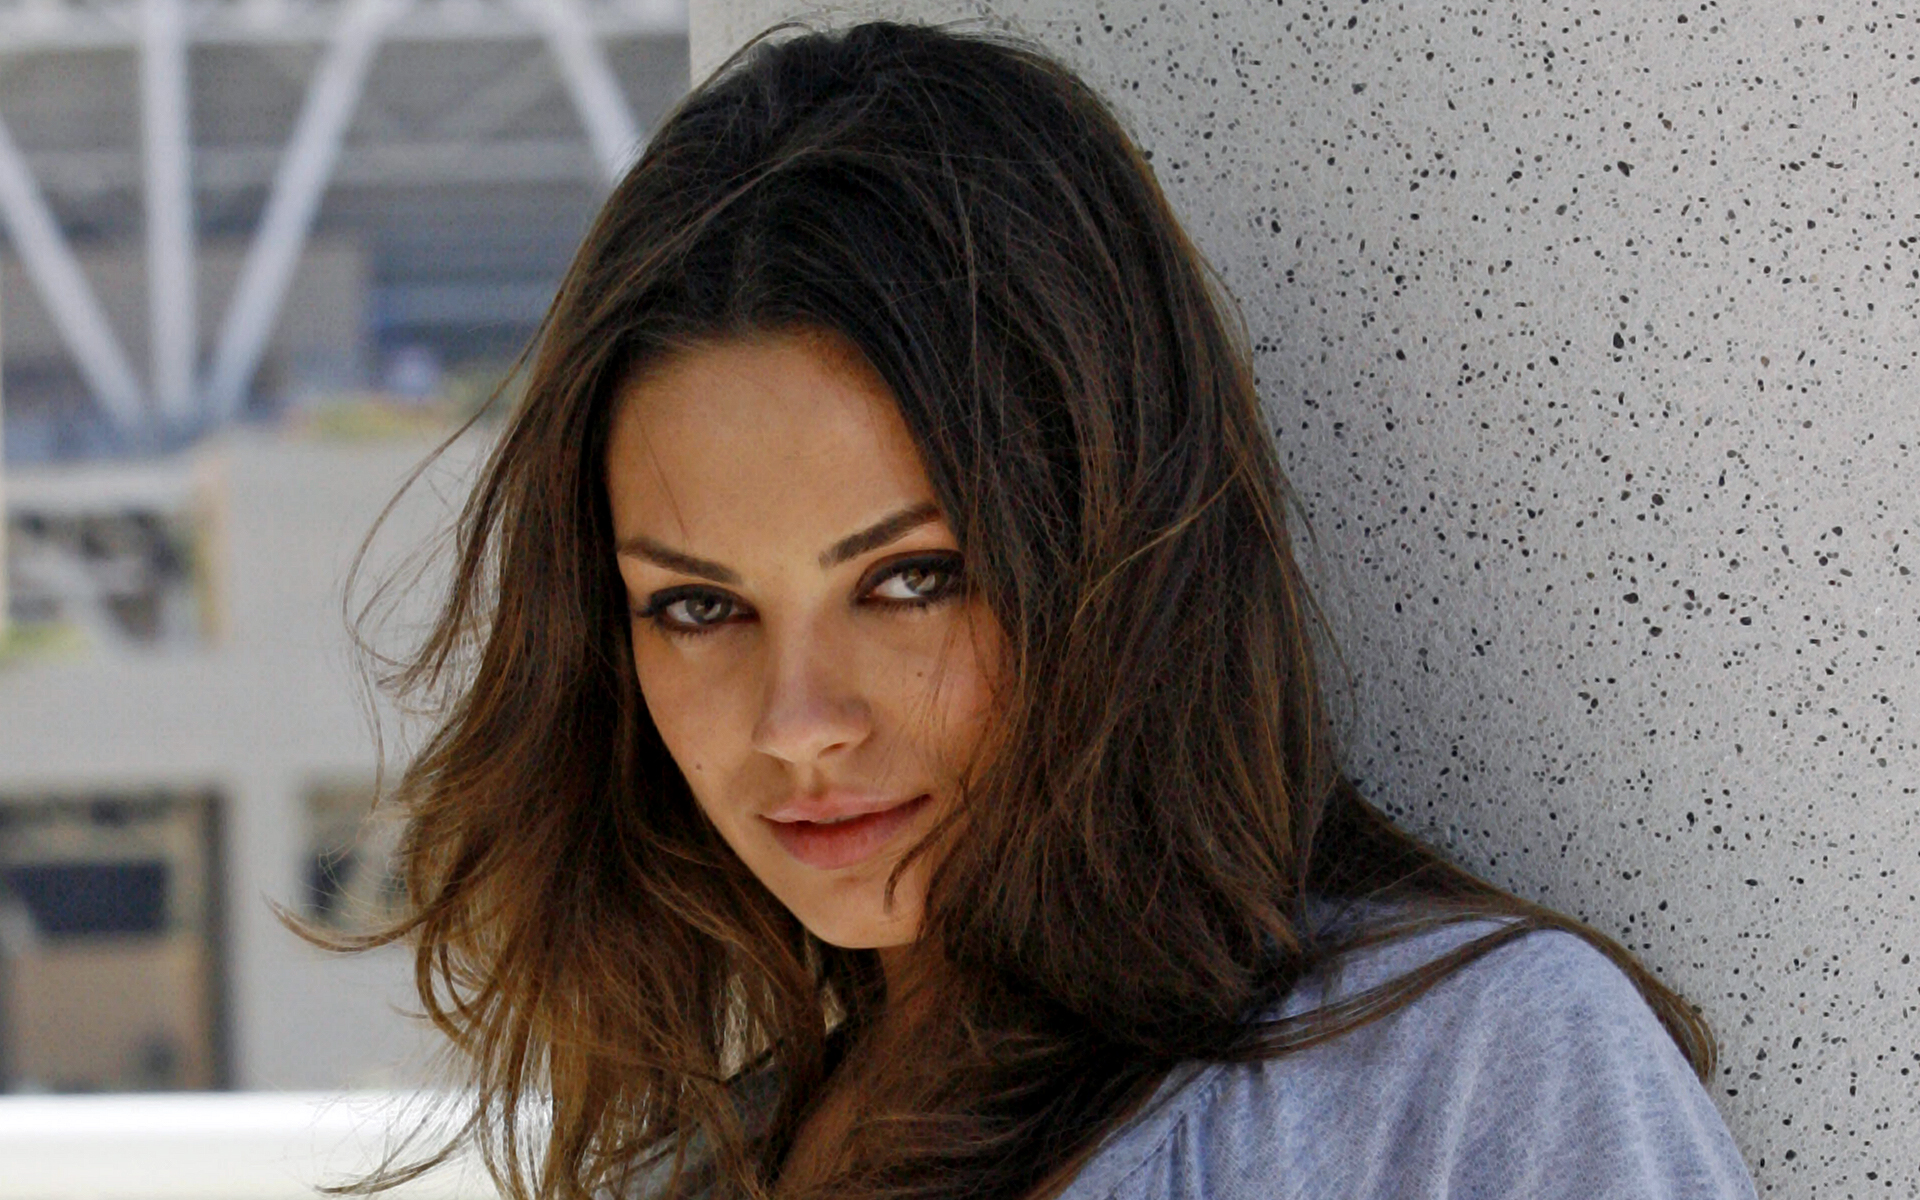 stunning look mila kunis free desktop wallpaper